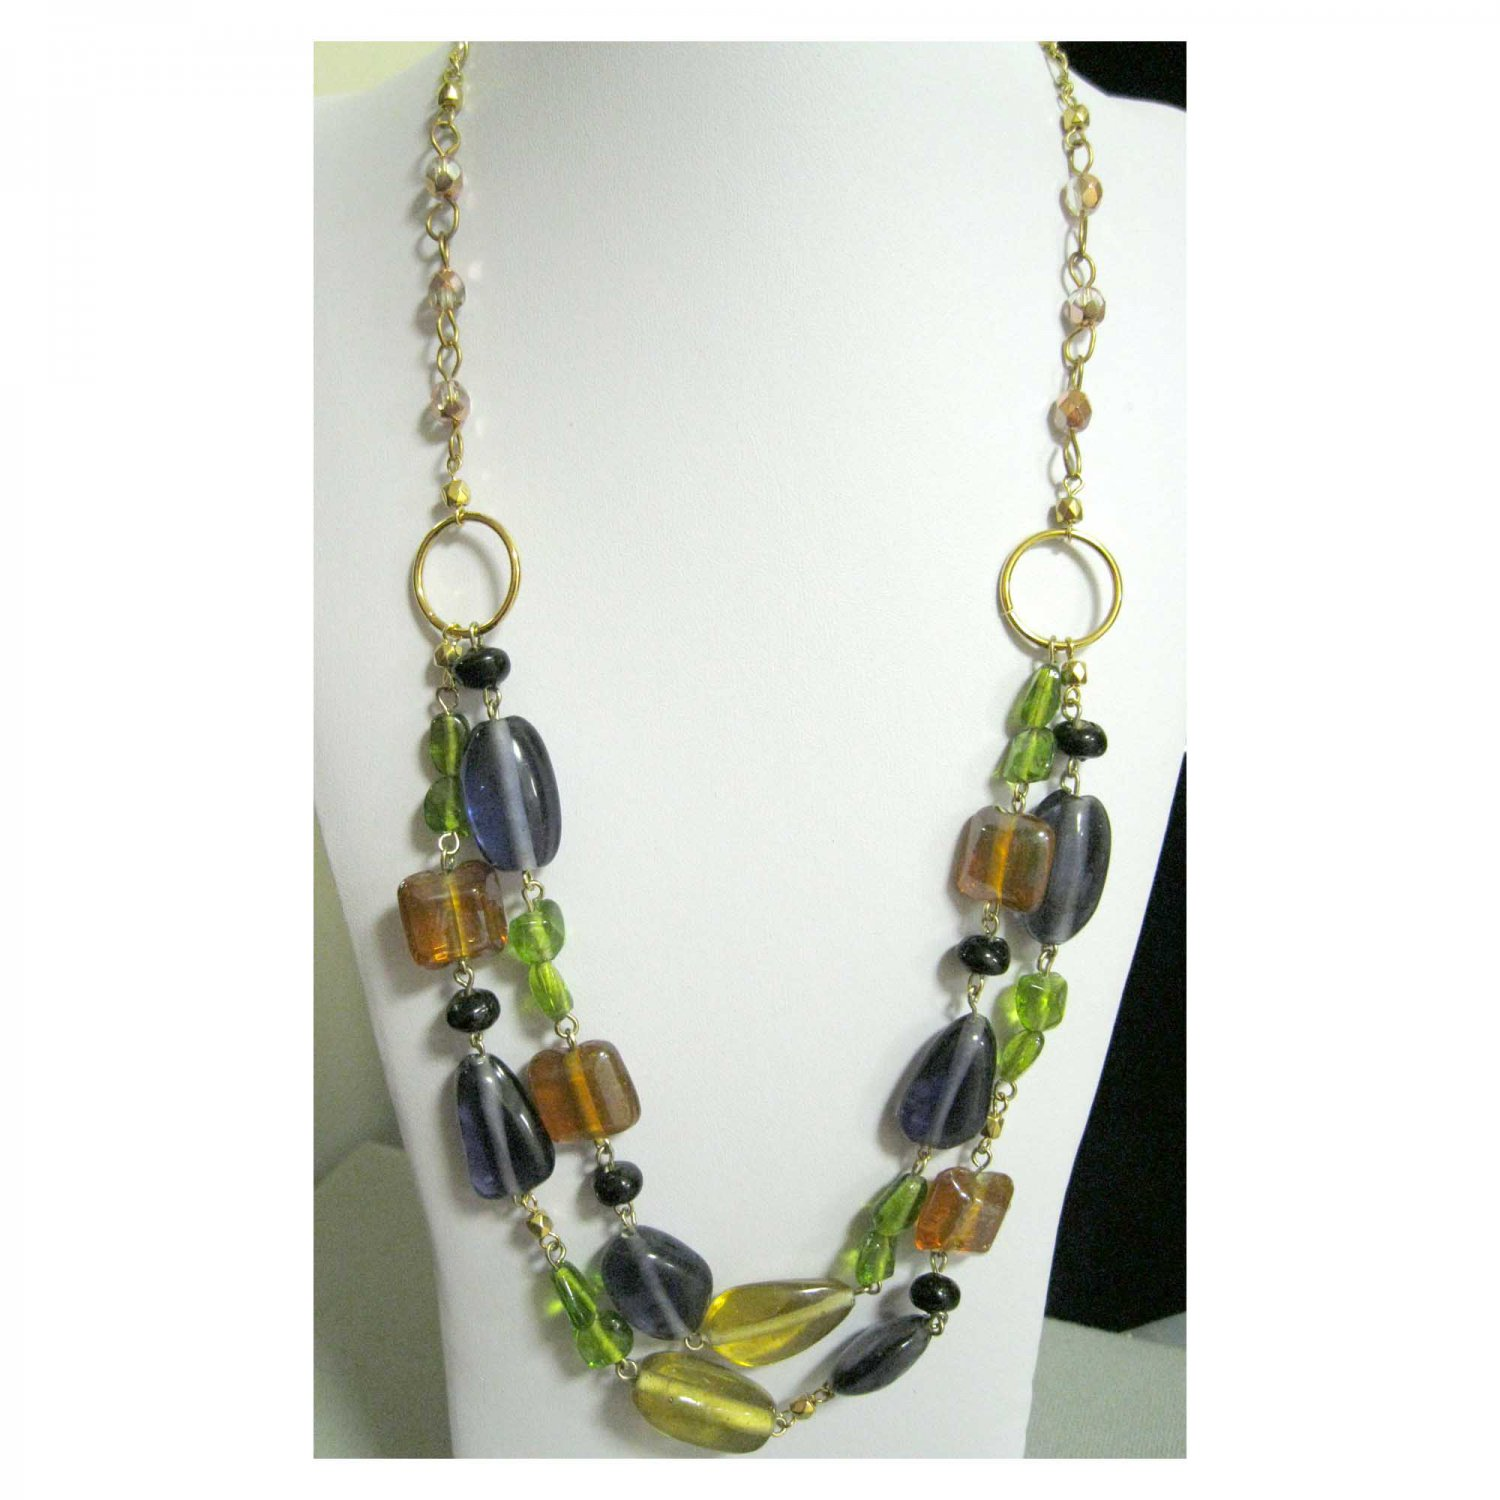 Fashion jewelry designer necklace multicolour ooak purple green gold black glass